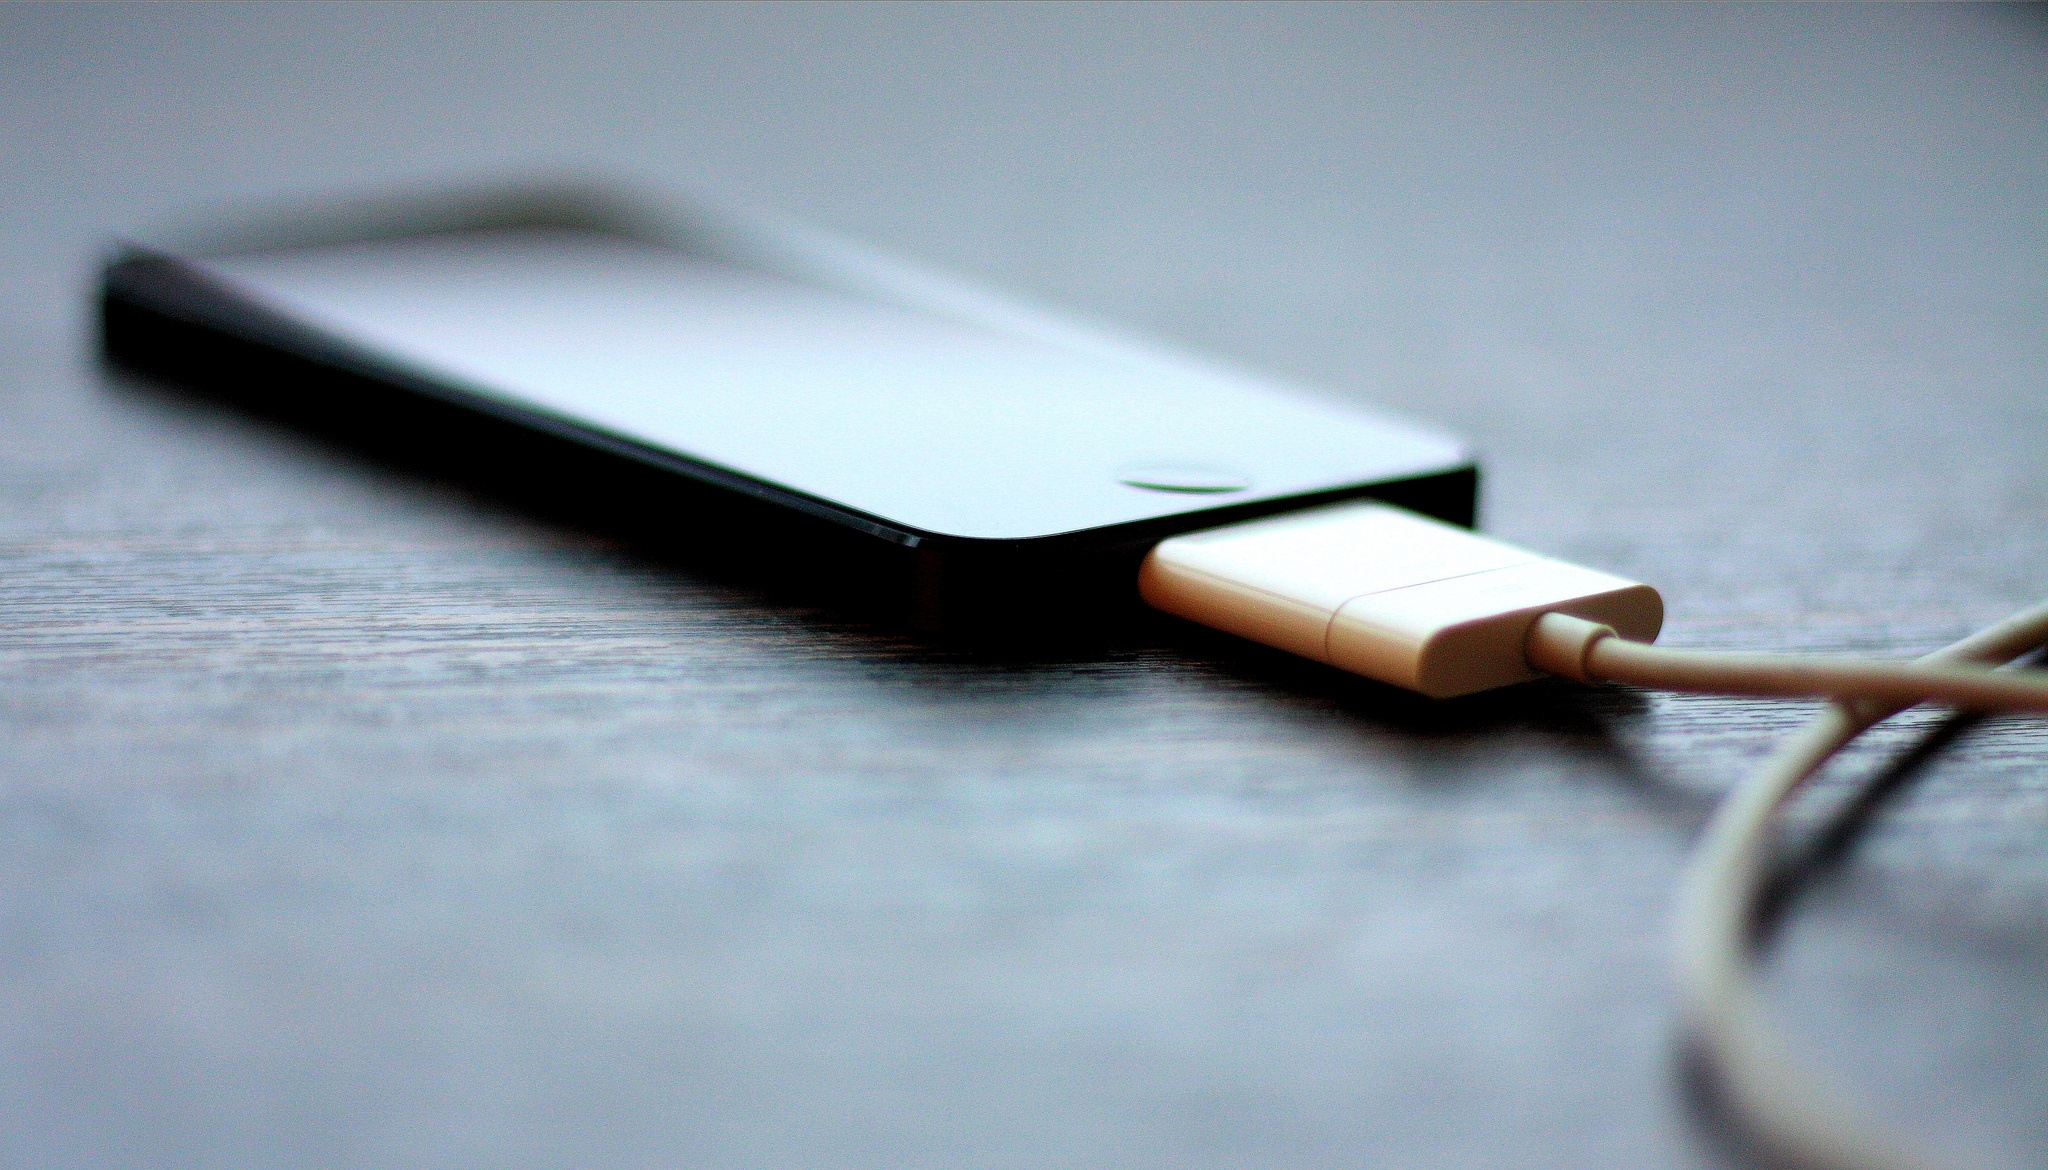 Should we charge our smartphones overnight?